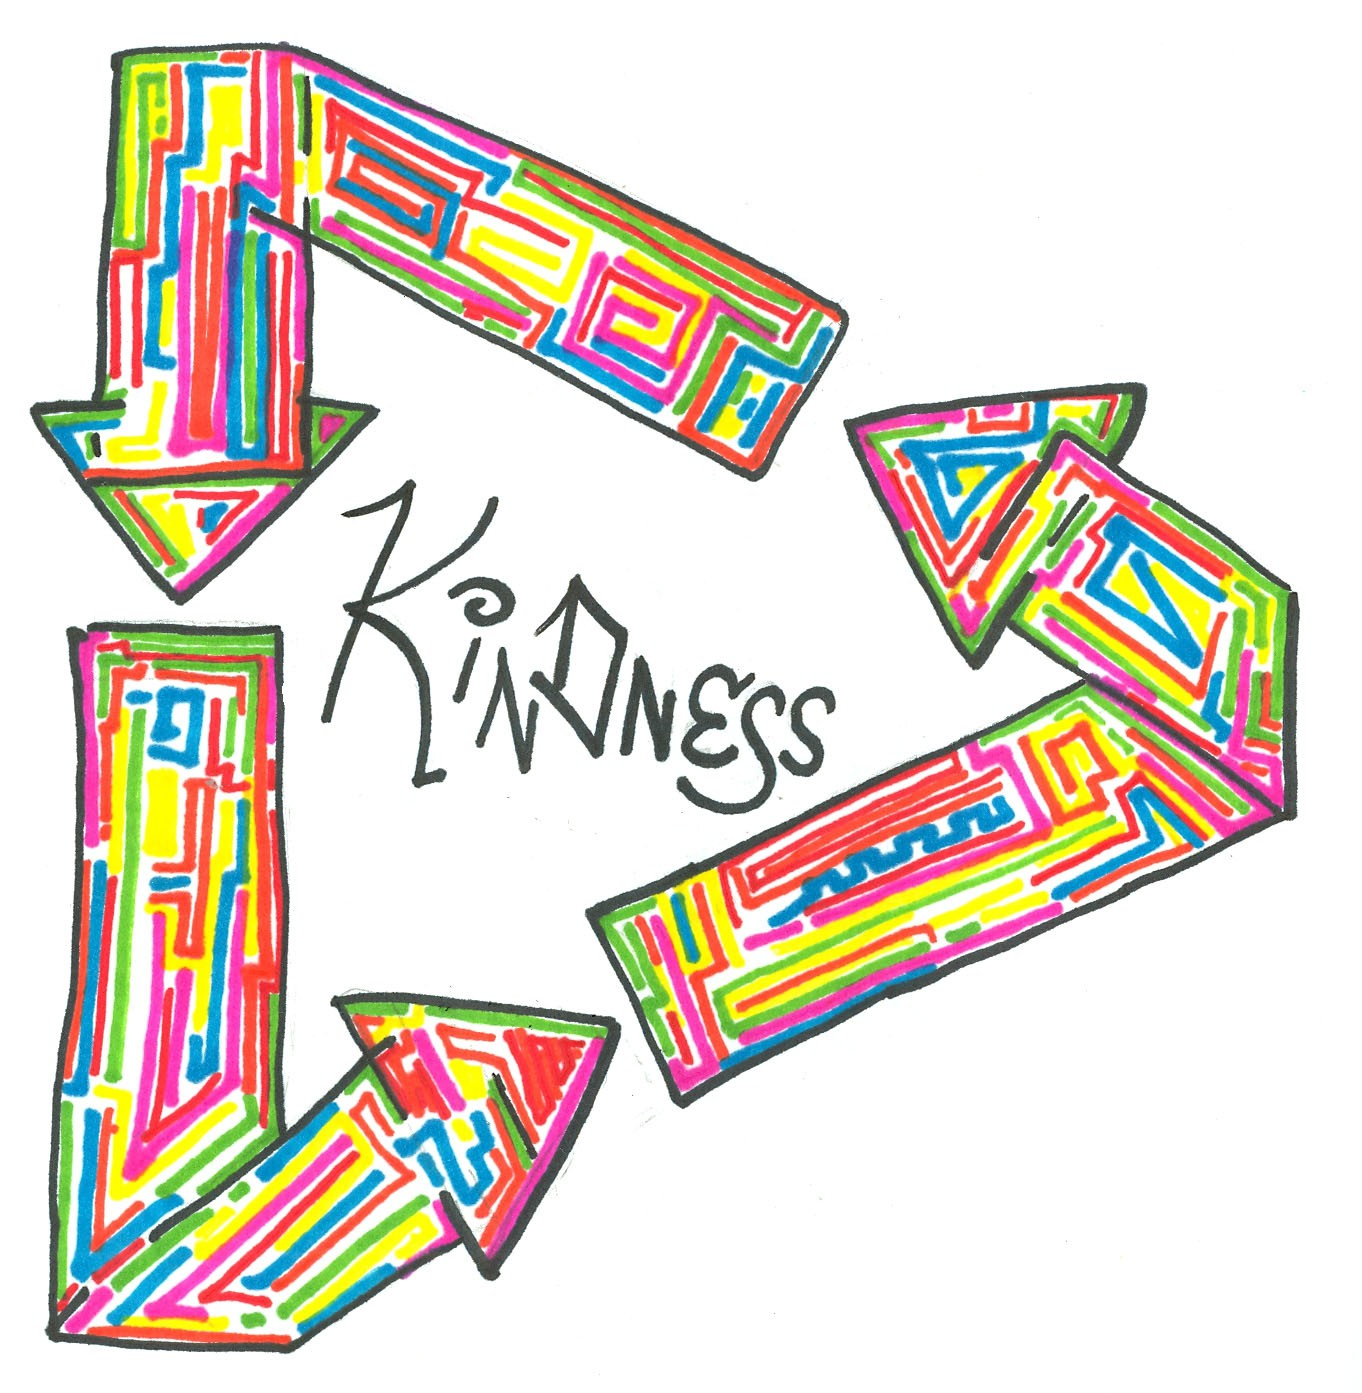 In Clipart Of Kindness 85791.